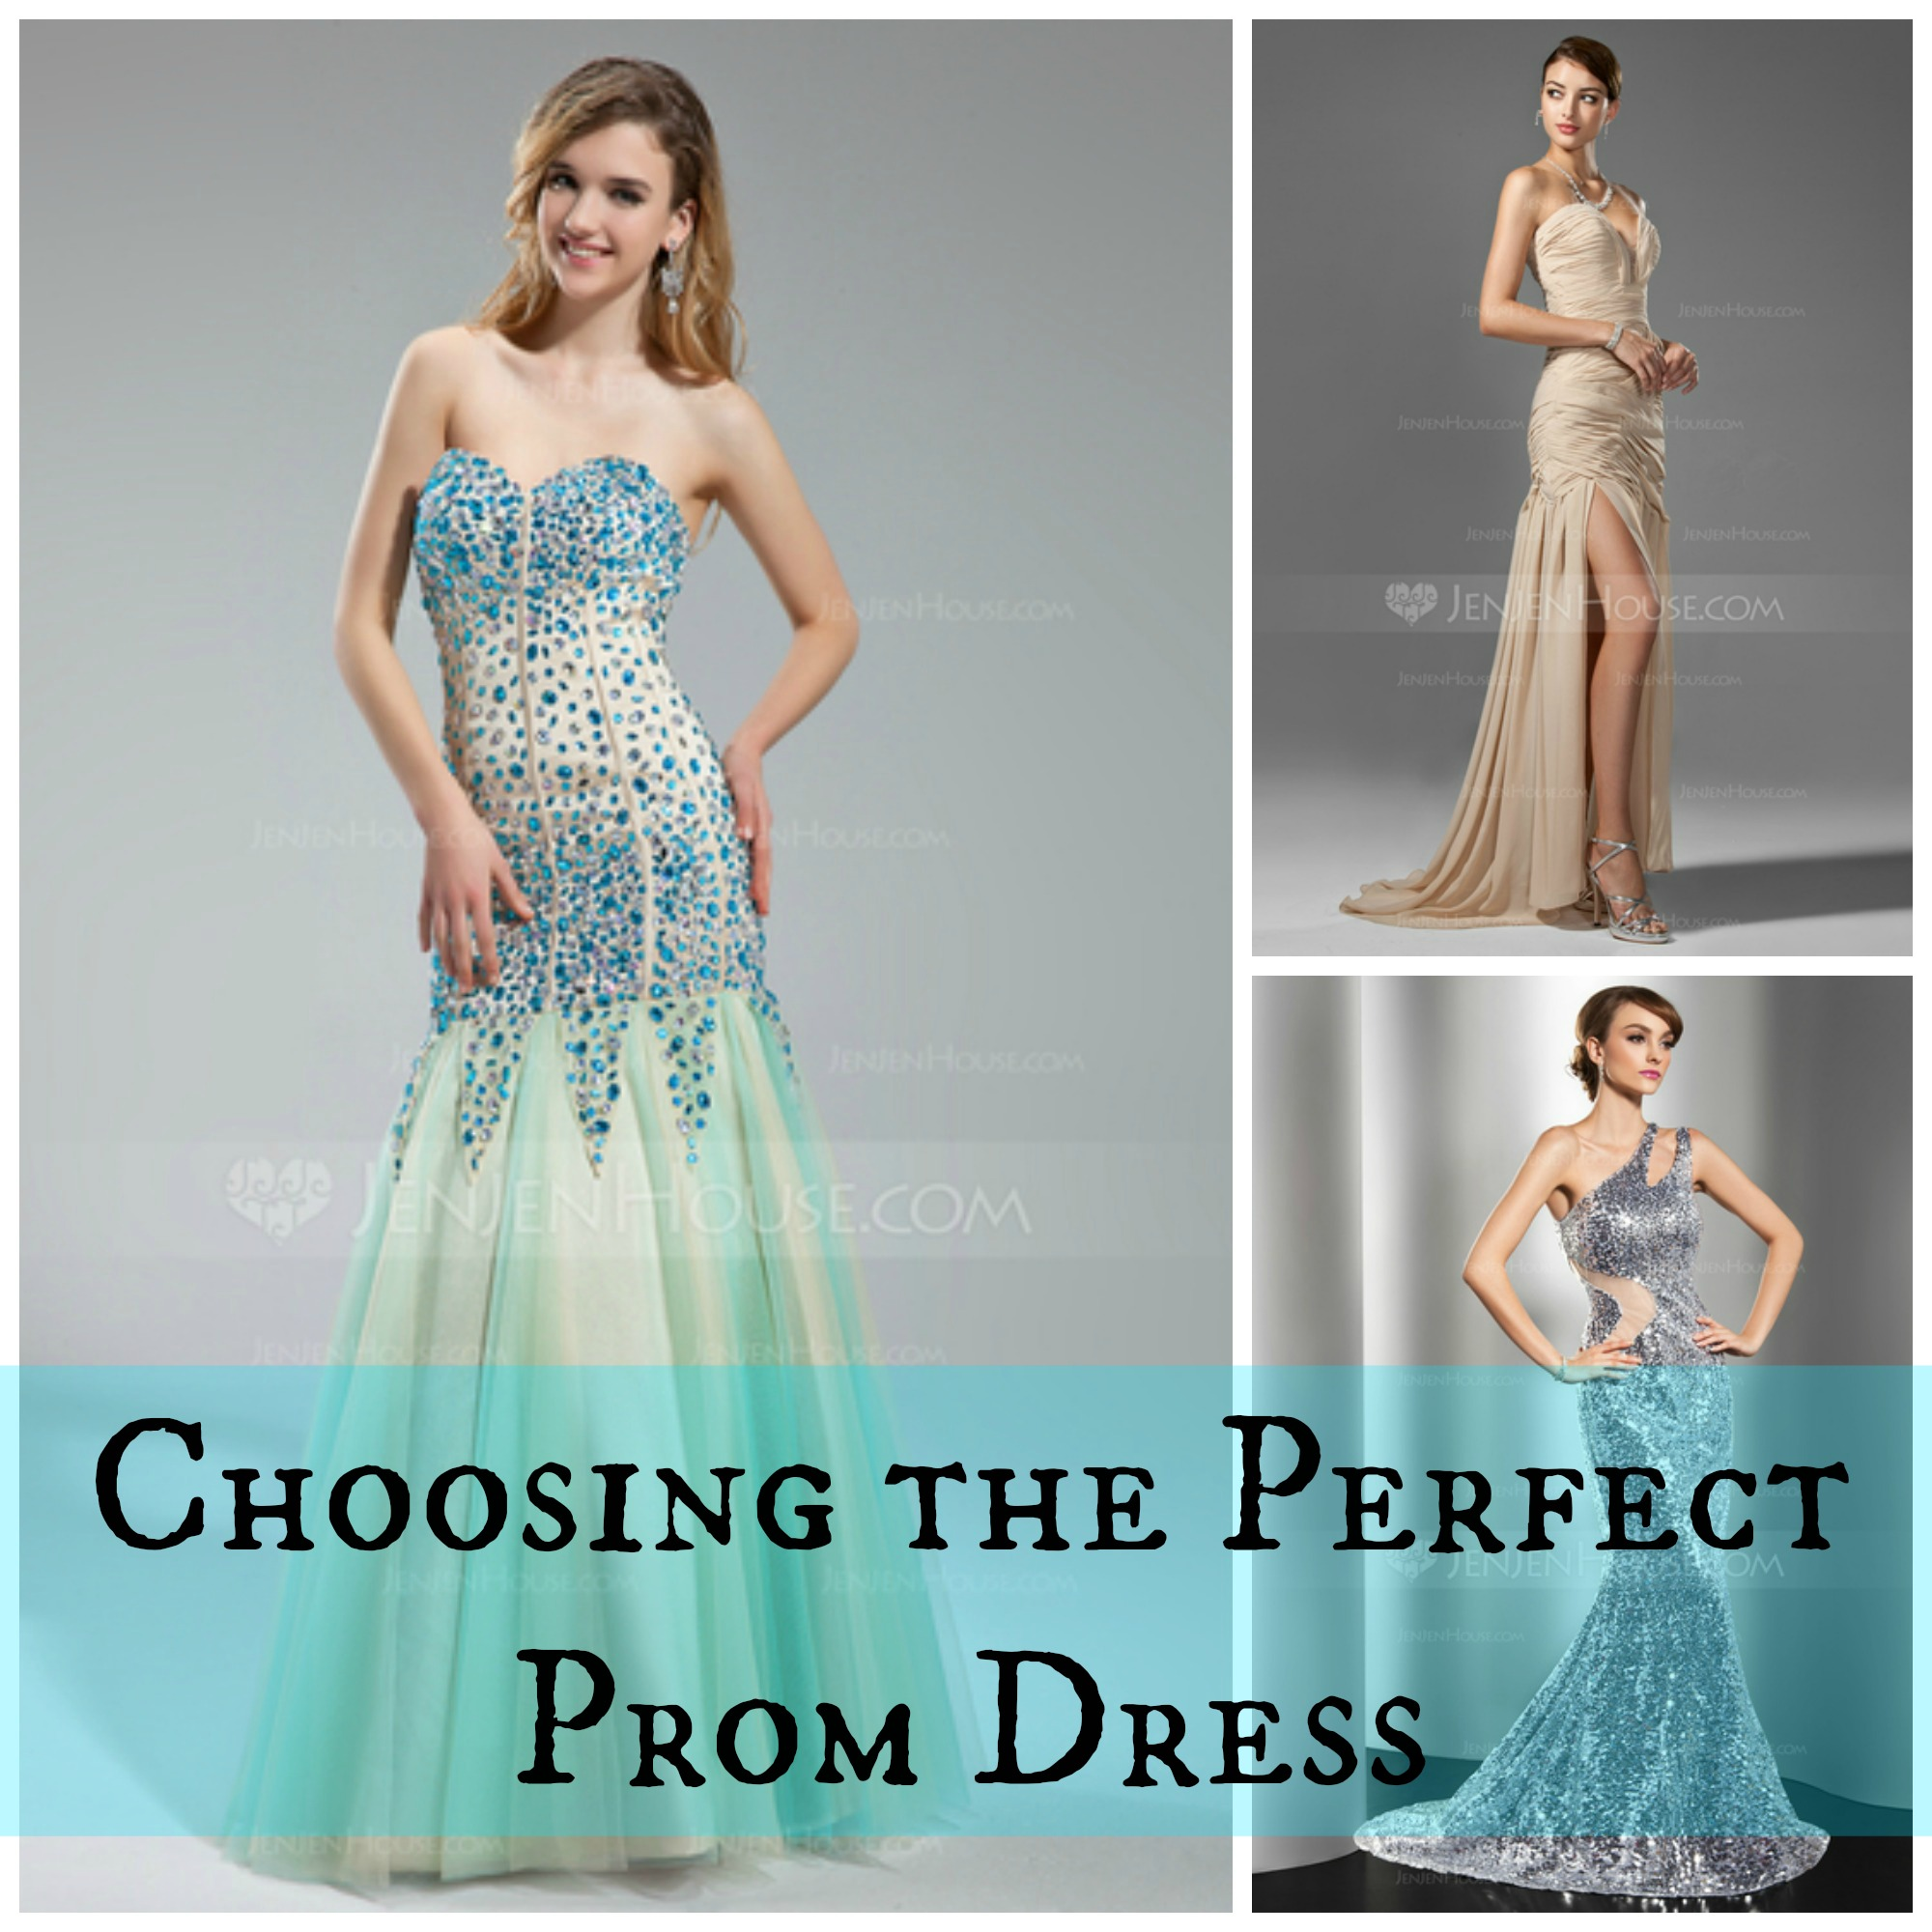 Dorable Prom Dress Stores In Las Vegas Images - Wedding Dress Ideas ...